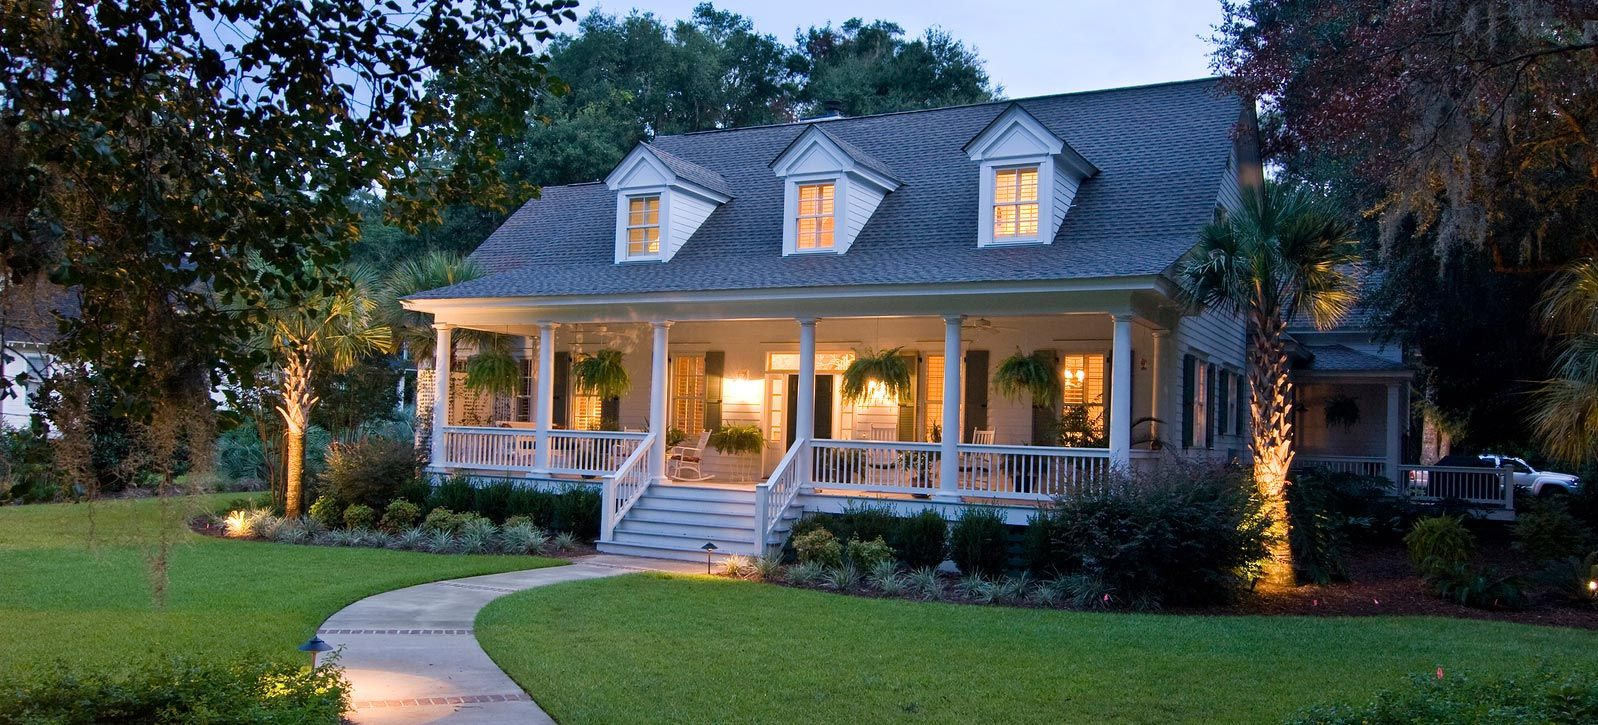 Lake milton homes for sale and real estate listings for Milton home builders